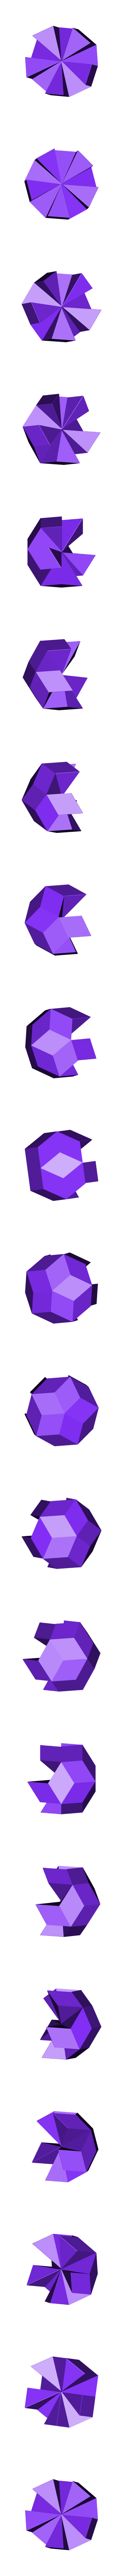 Rh_T_Half_FairPartB_20mm.stl Download free STL file Dissection of a Rhombic Triacontahedron, Golden Ratio • Model to 3D print, LGBU